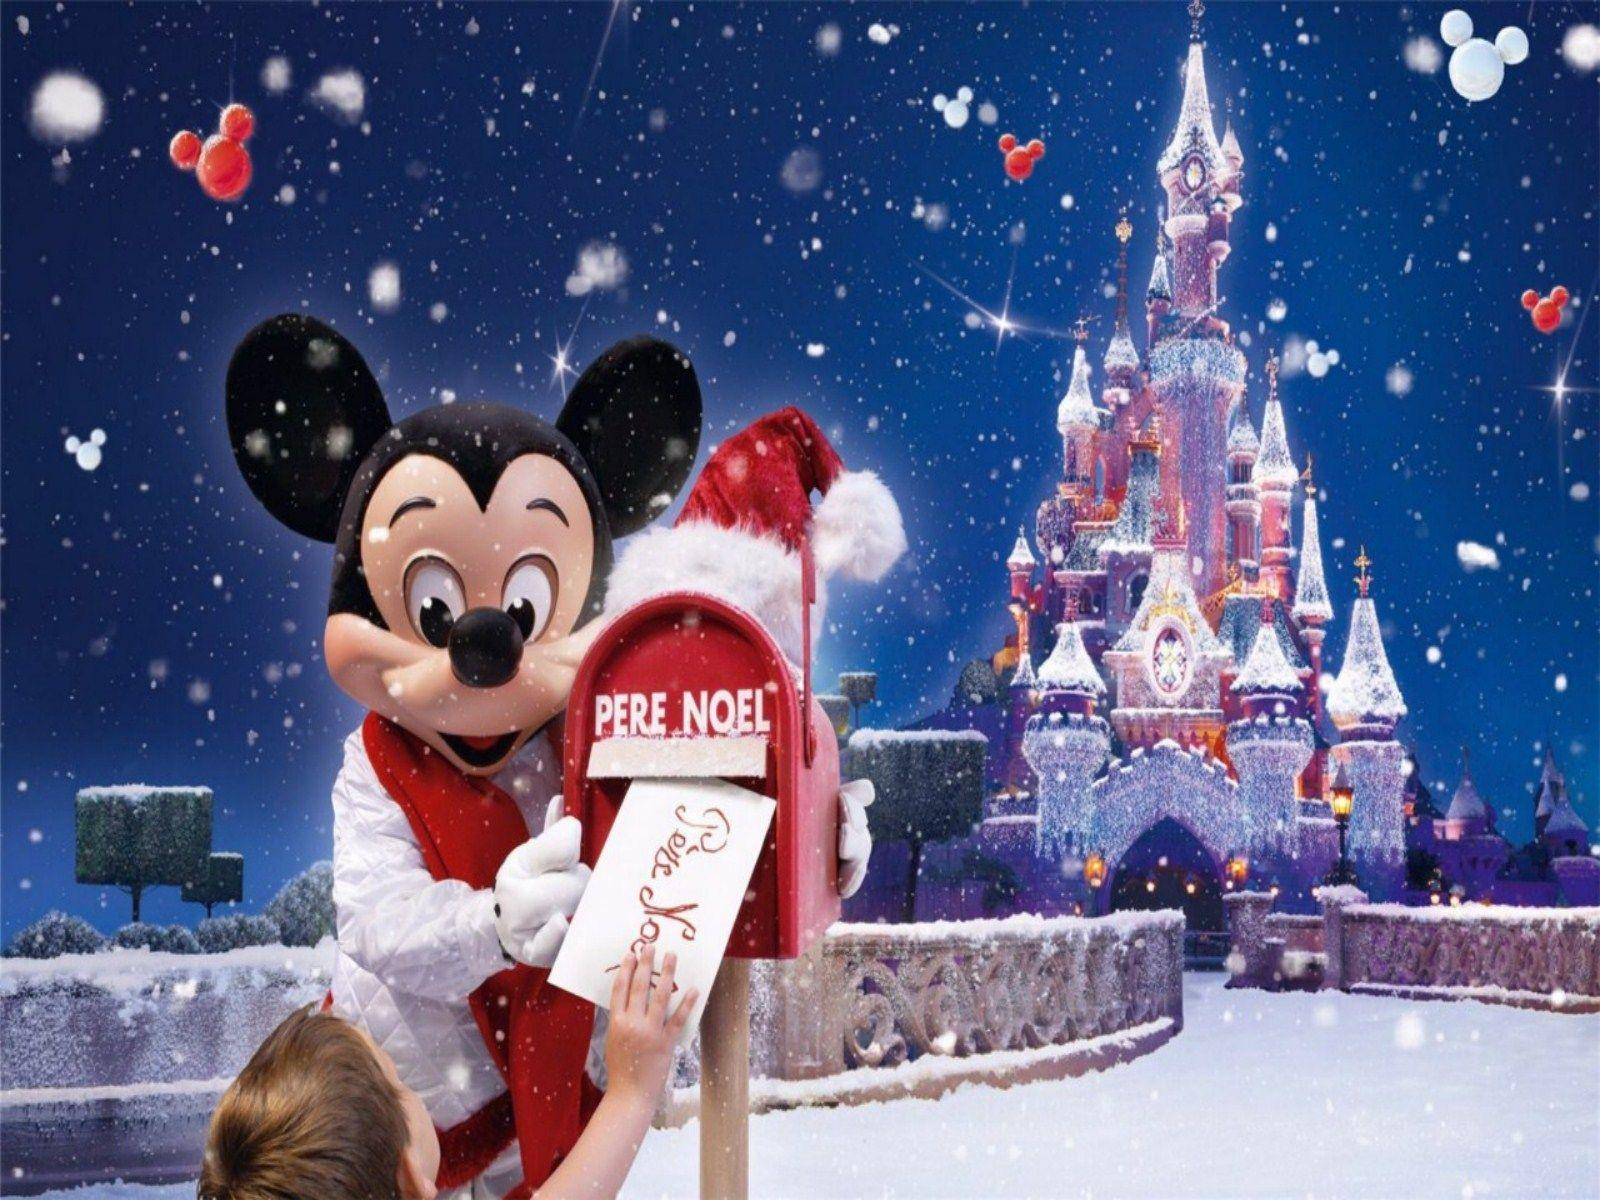 Walt Disney Christmas Wallpaper.Disney Christmas Wallpapers Free Wallpaper Cave